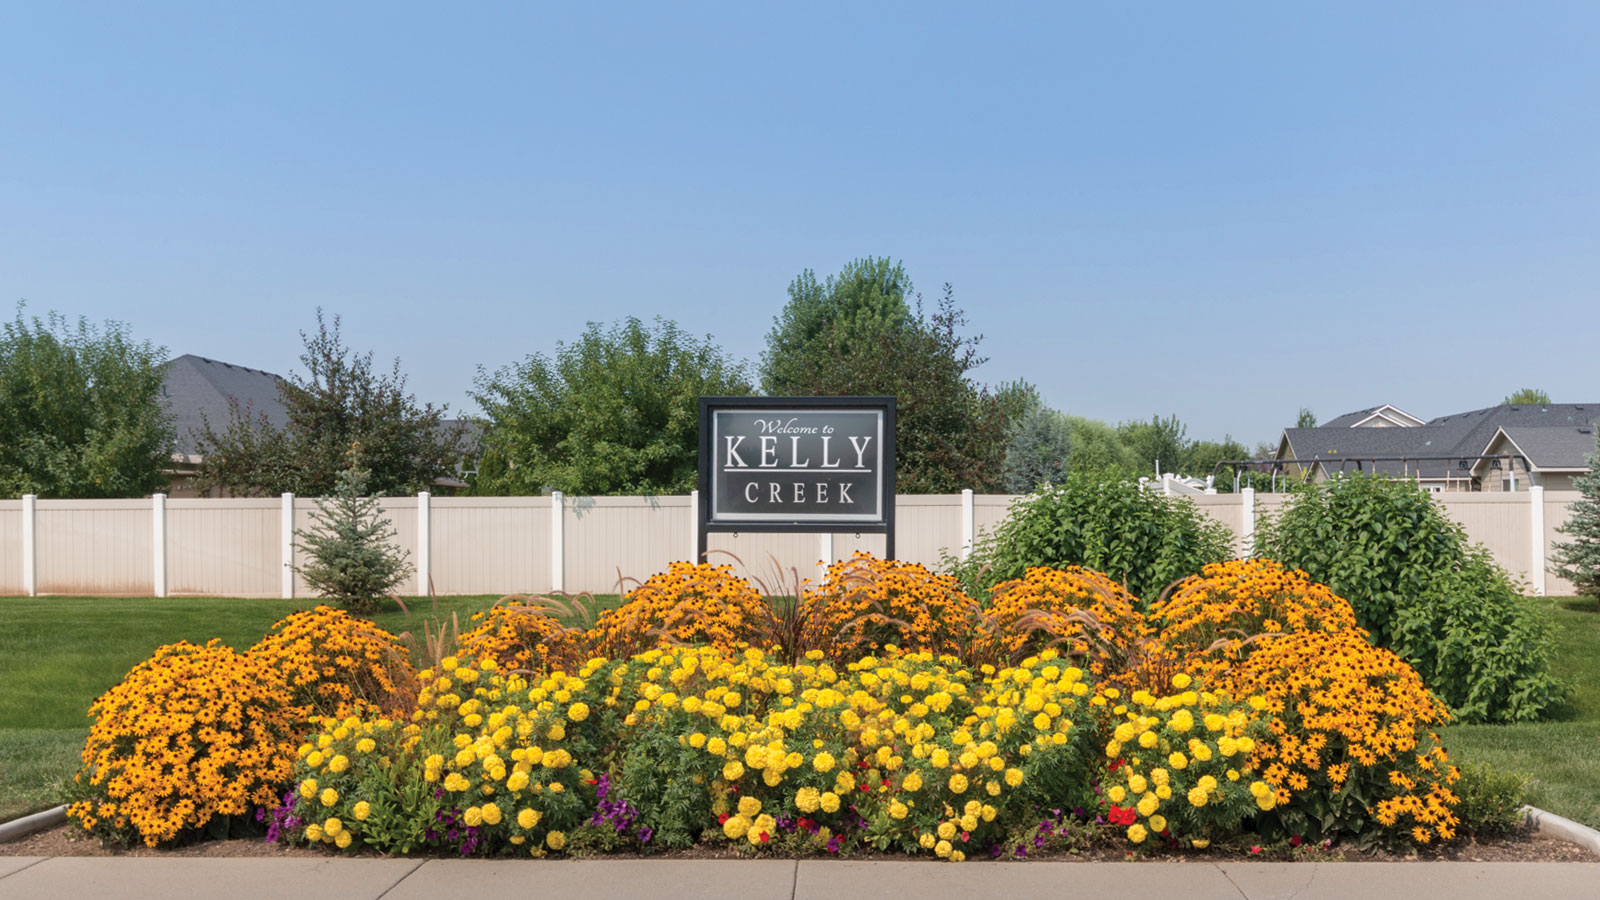 Kelly Creek Subdivision Meridian Idaho